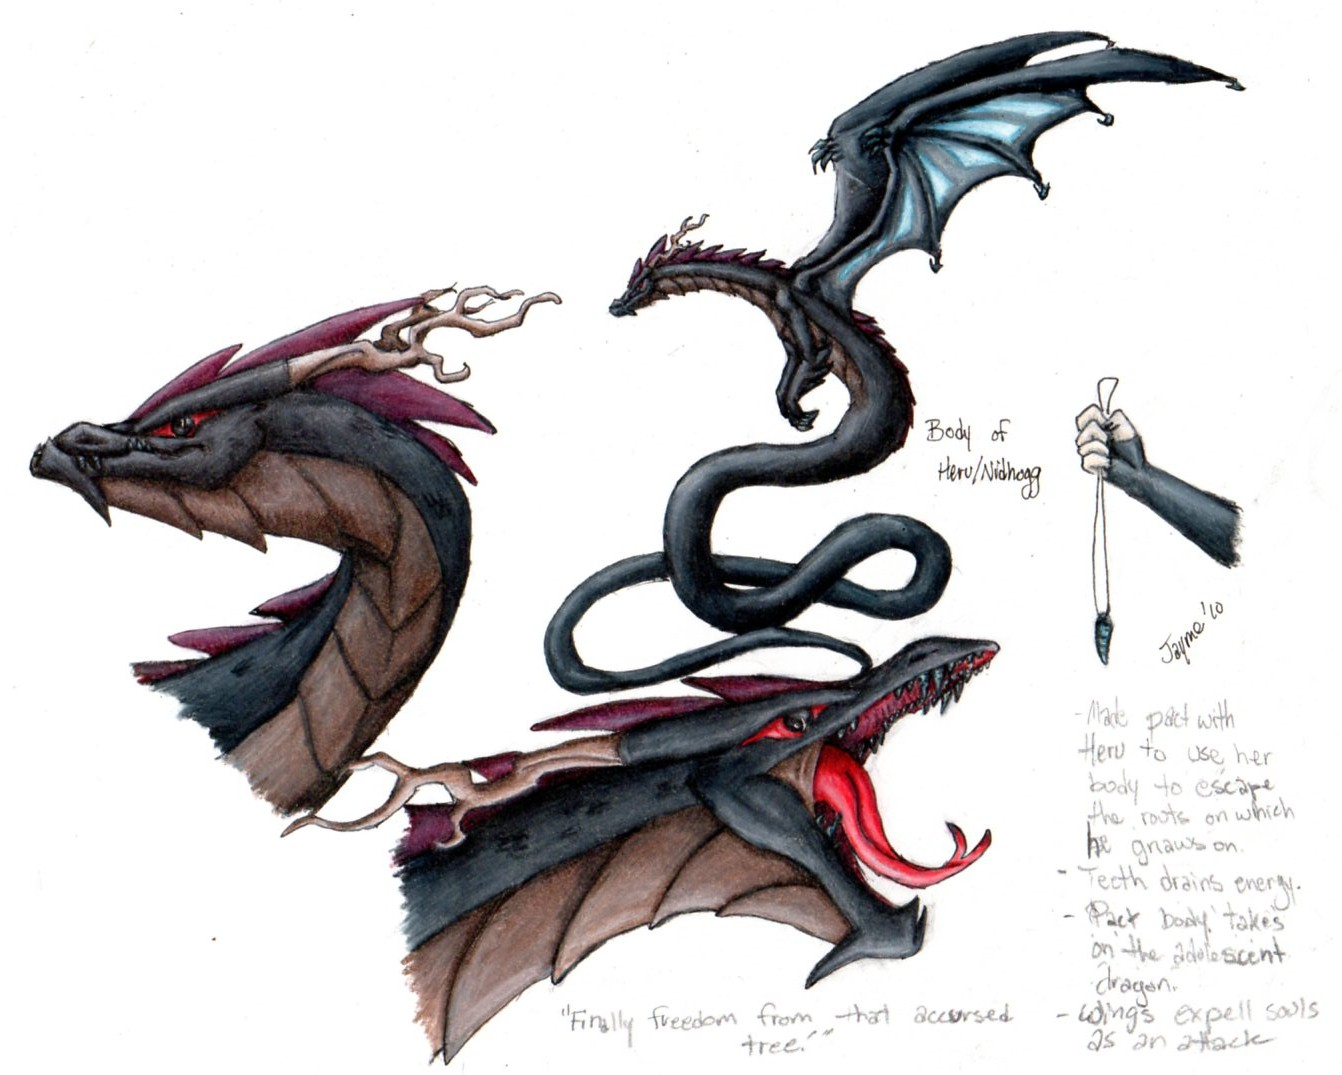 Dragon Design 1 - Nidhogg-Heru by Fai-Ness on DeviantArt